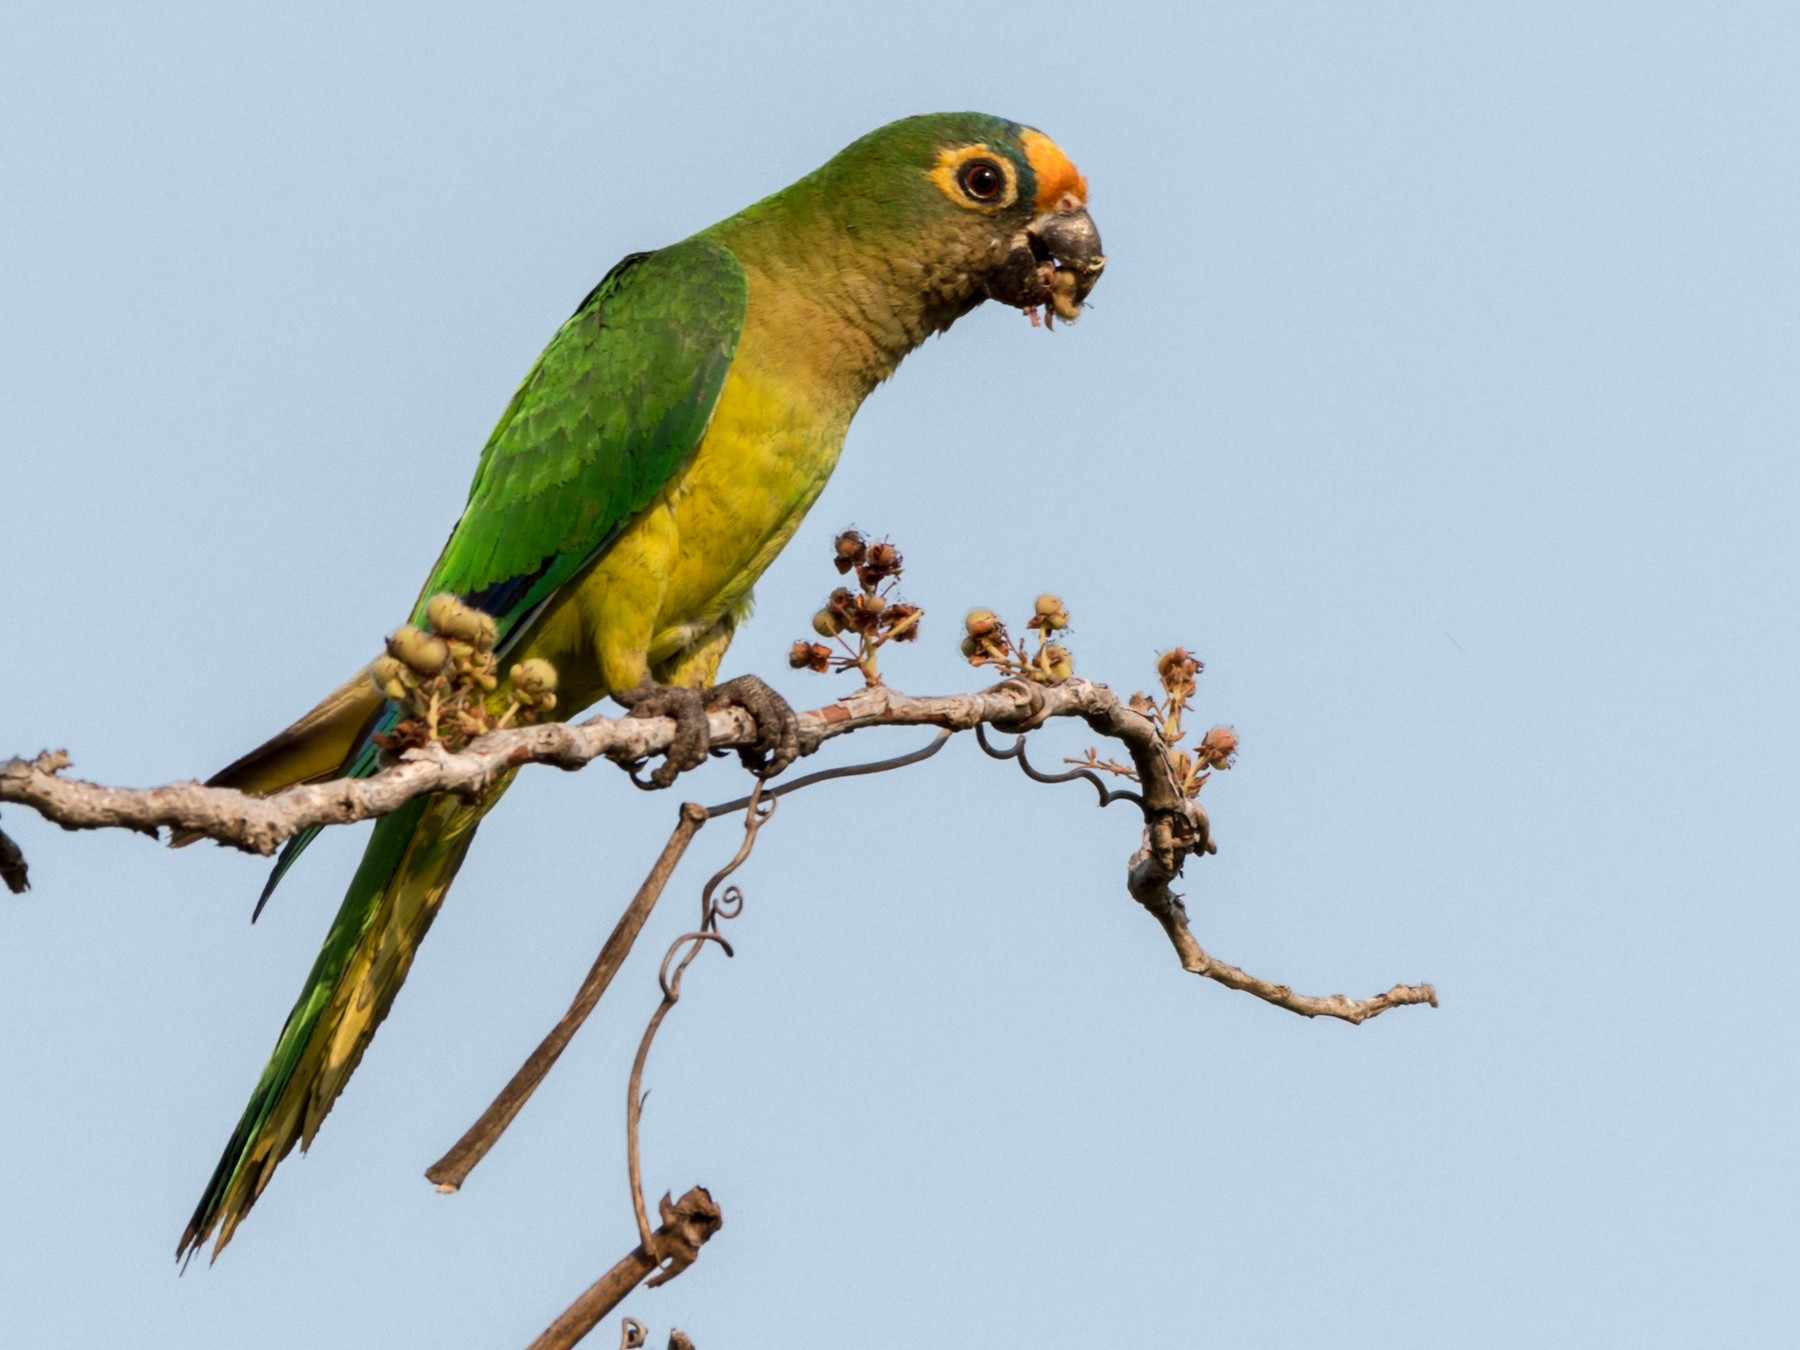 Peach-fronted Parakeet - Michael Plaster